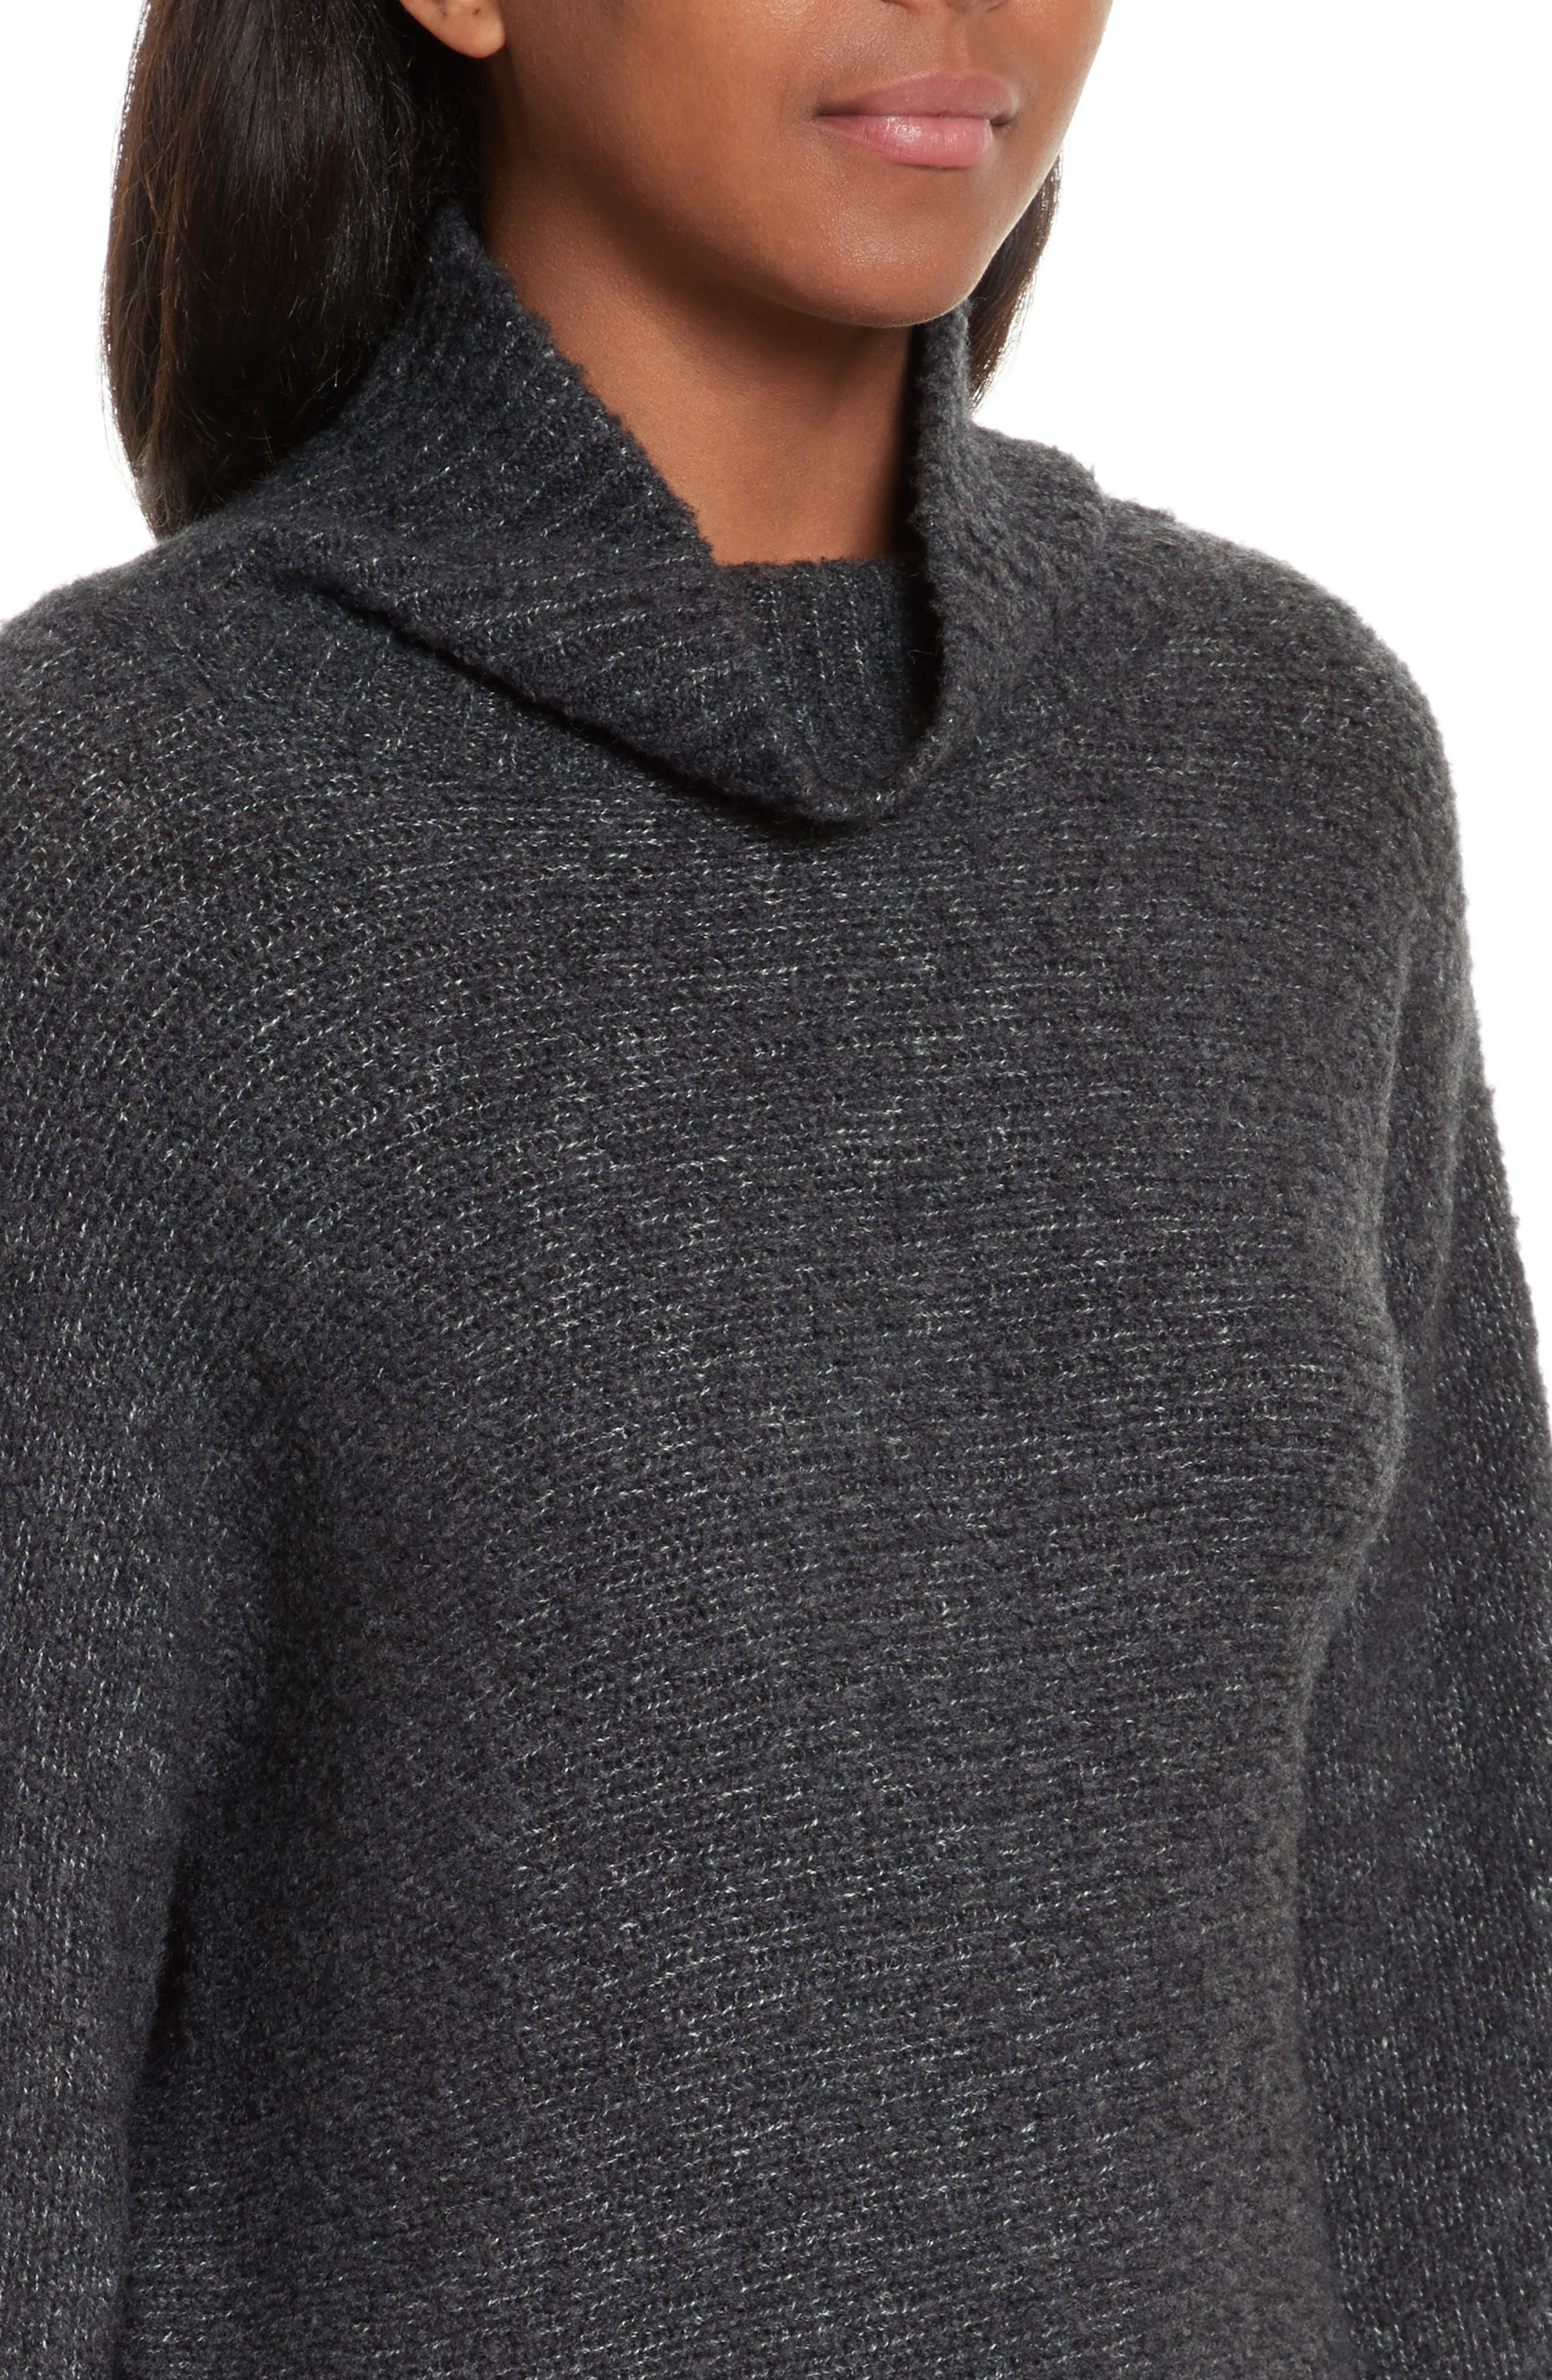 Lehi Wool & Cashmere Sweater,                             Alternate thumbnail 7, color,